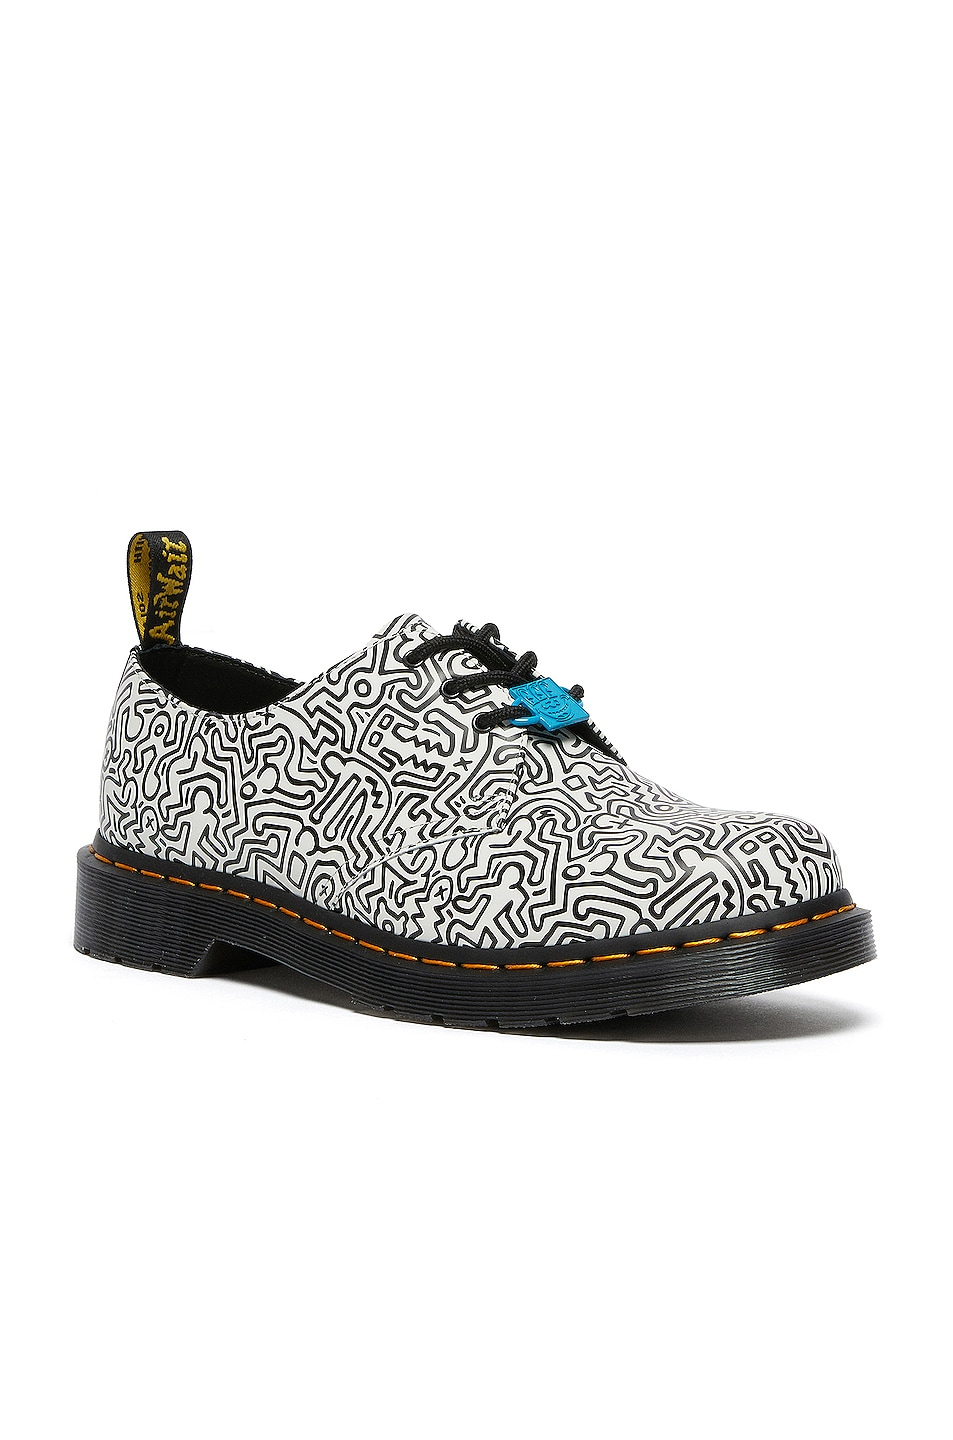 Image 1 of Dr. Martens 1461 Keith Haring in White